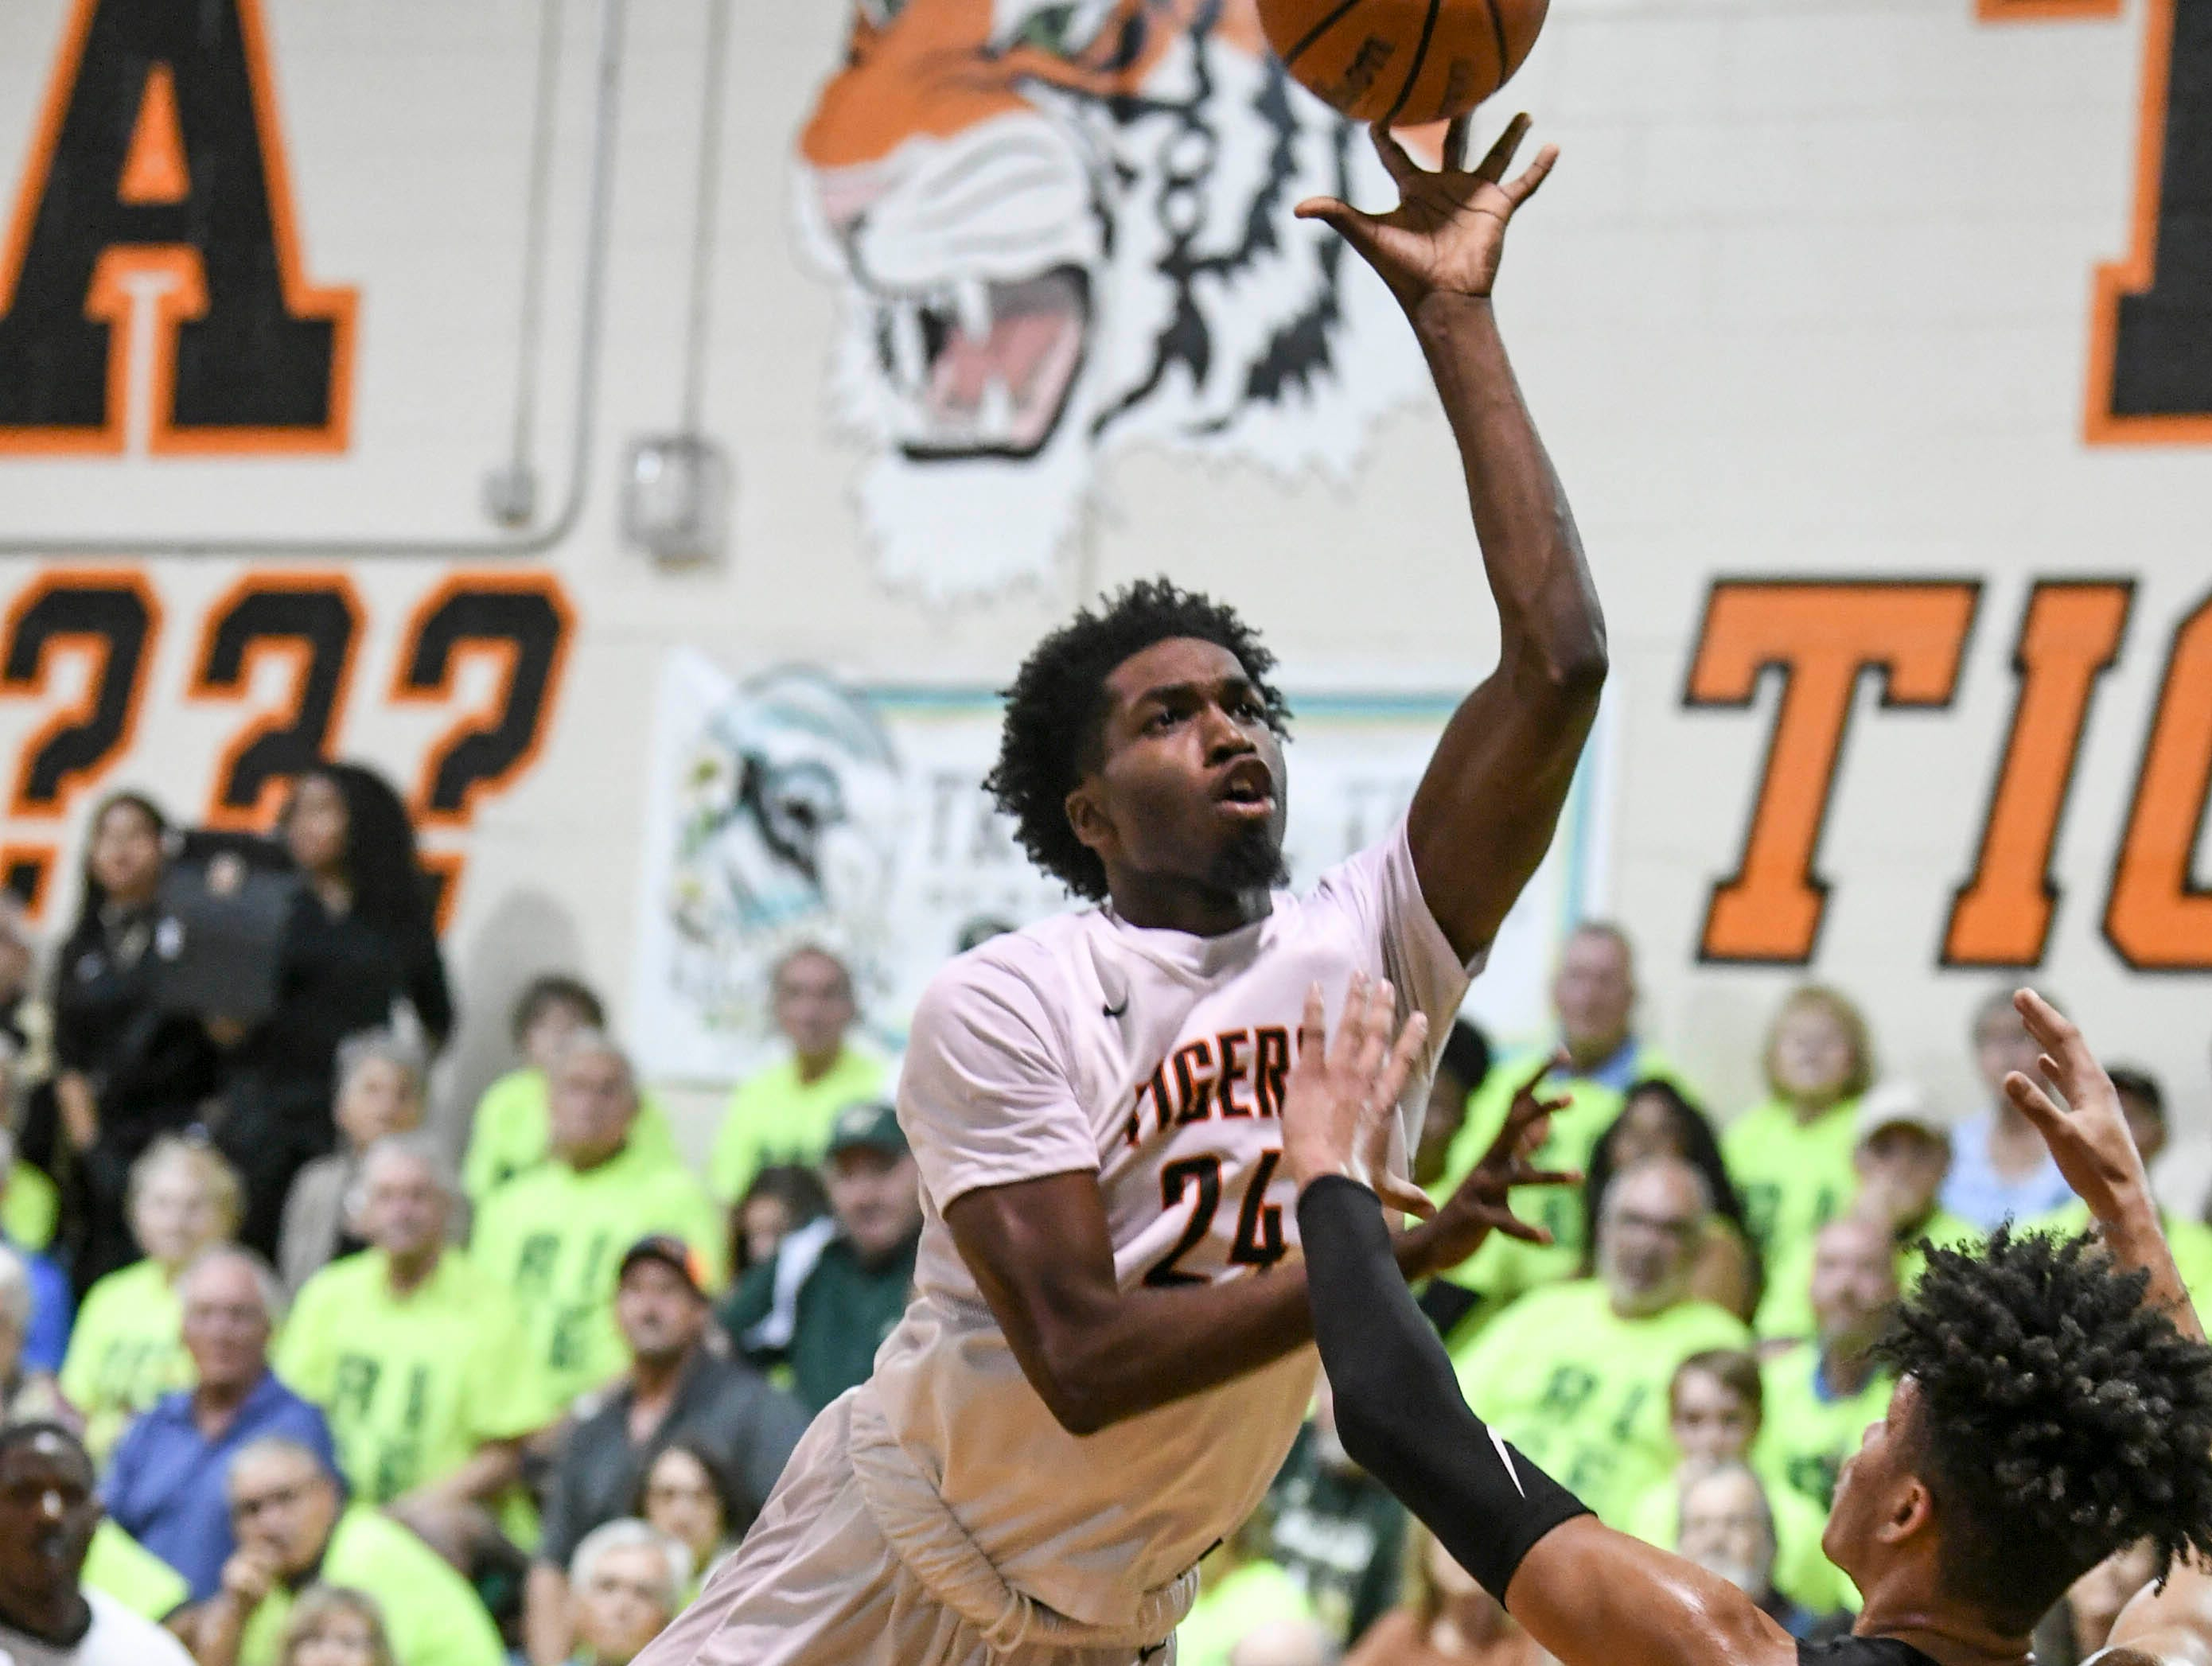 Marquise Freeman of Cocoa drives to the basket during Friday's basketball Regional Final in Cocoa